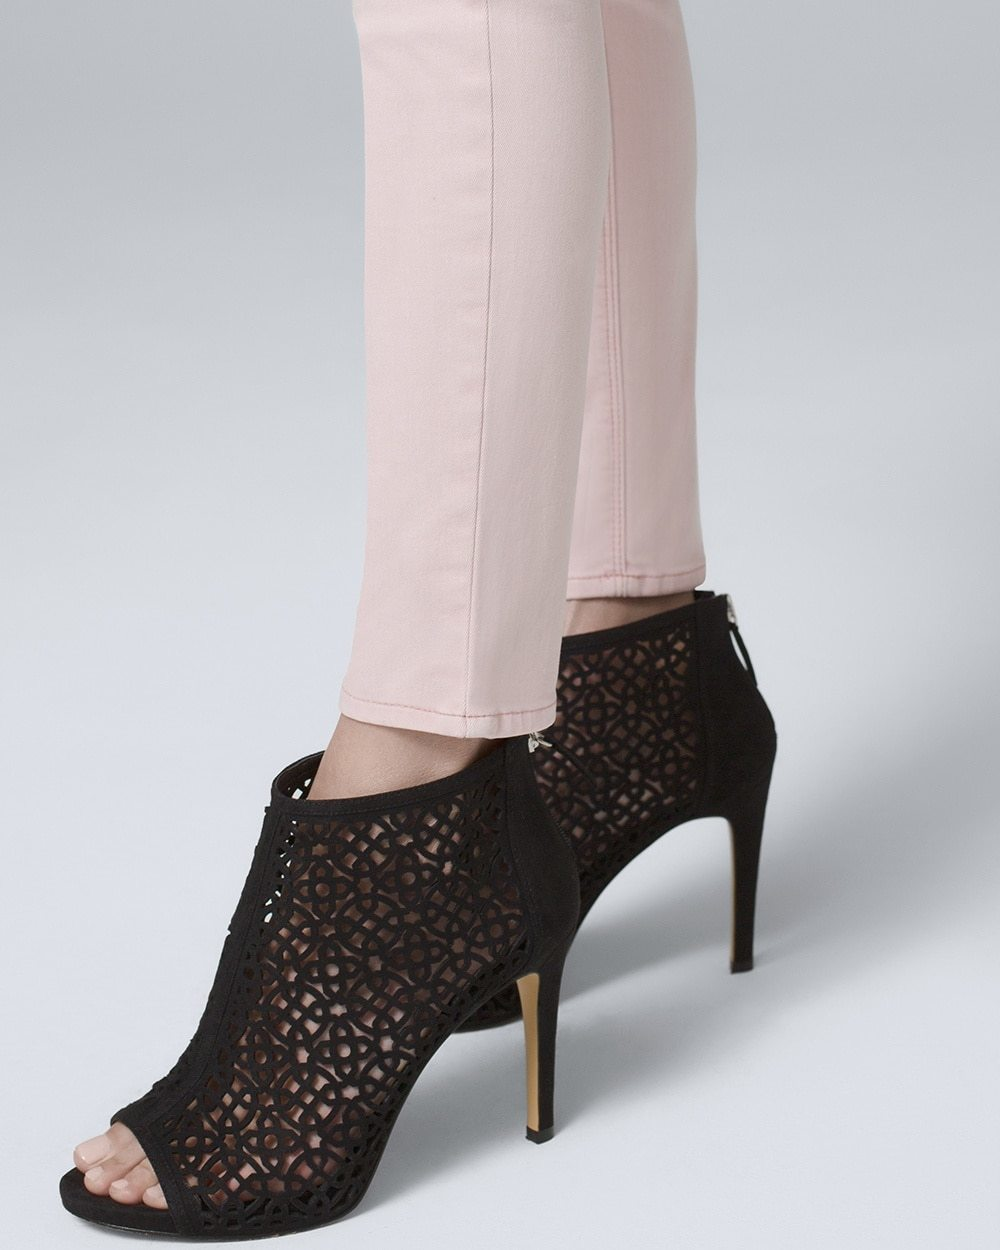 Laser-Cut Peep-Toe Booties